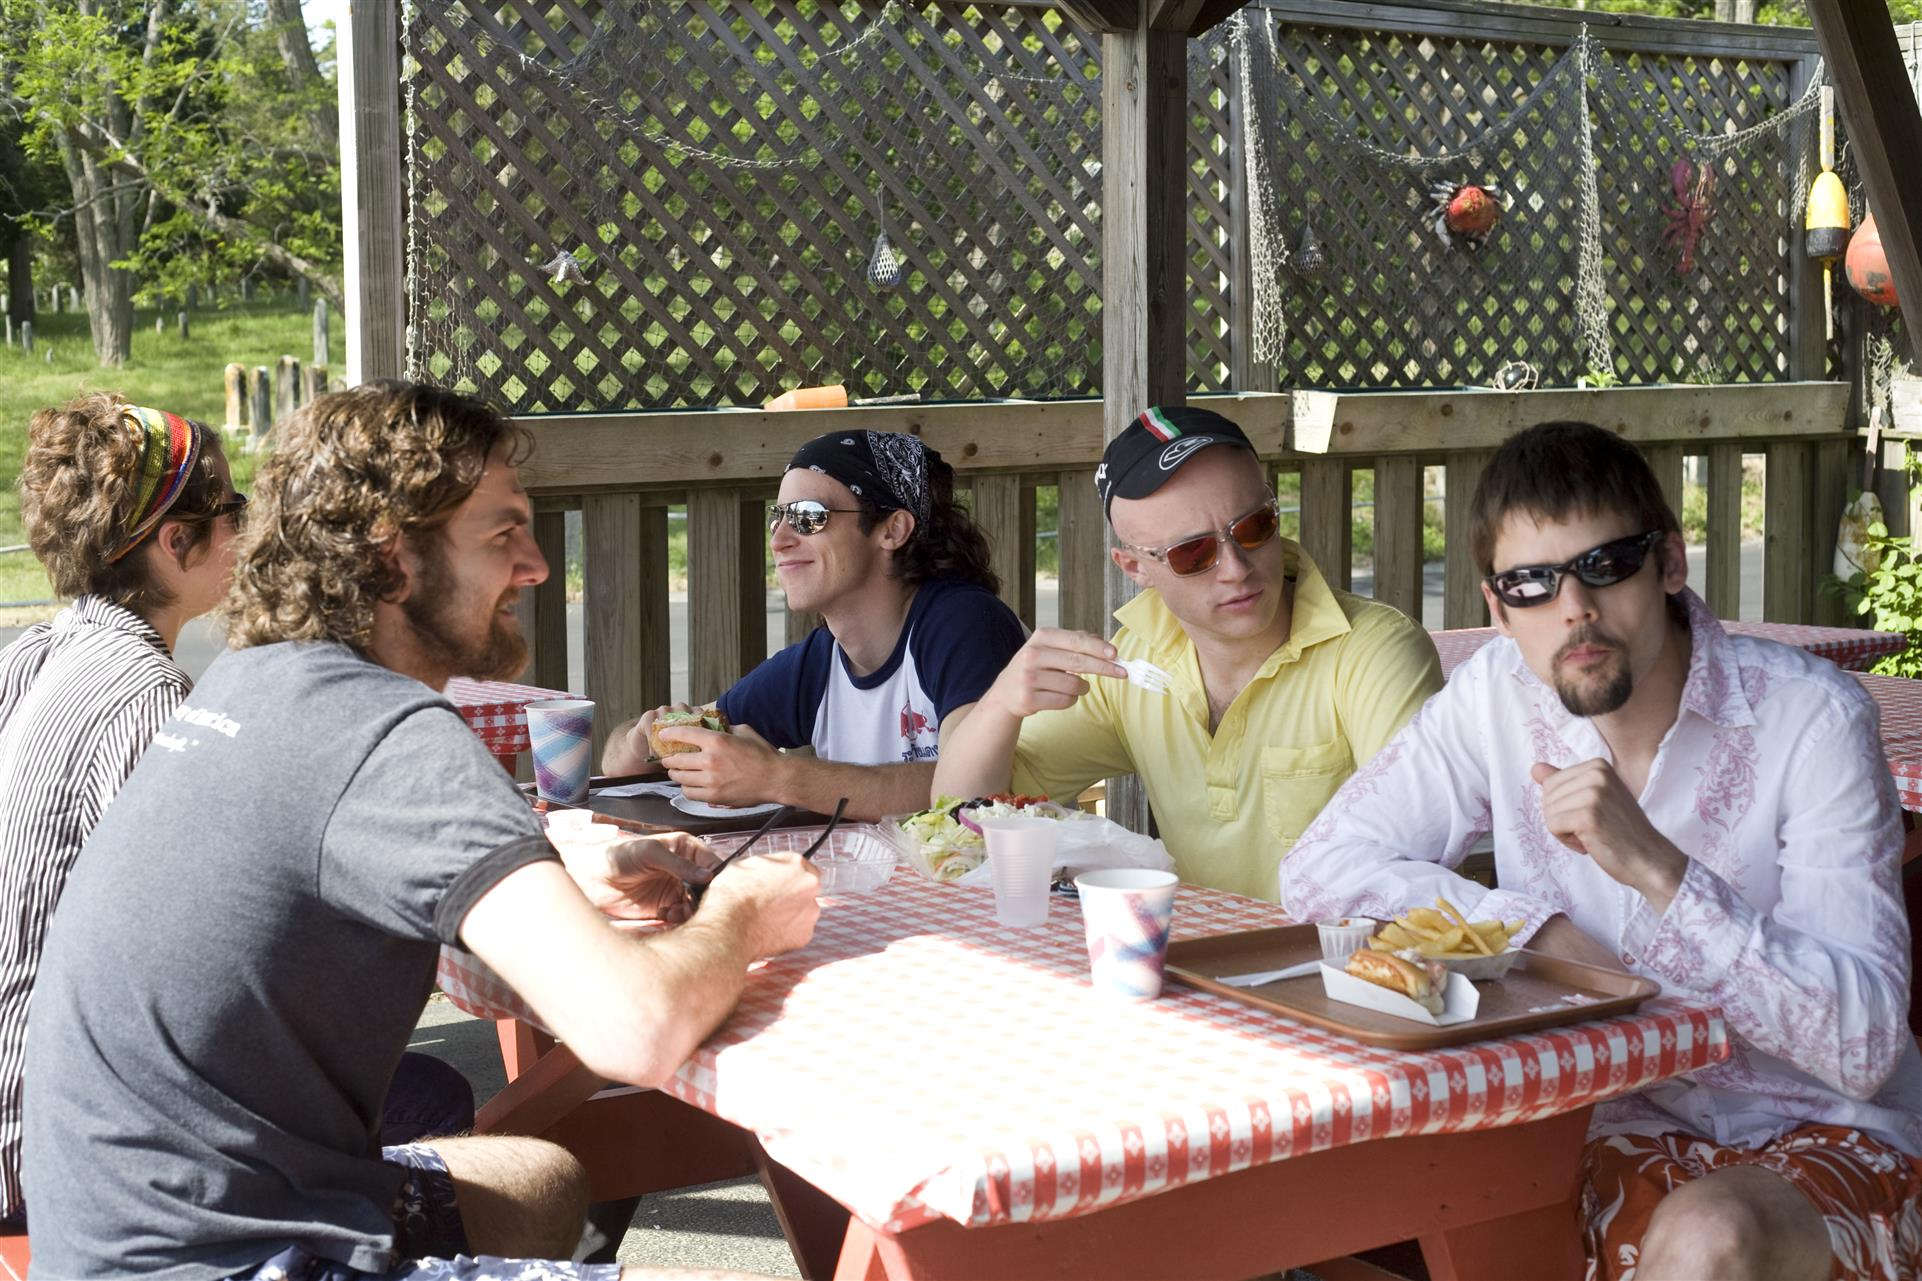 a grouo of men eating at a picnic table